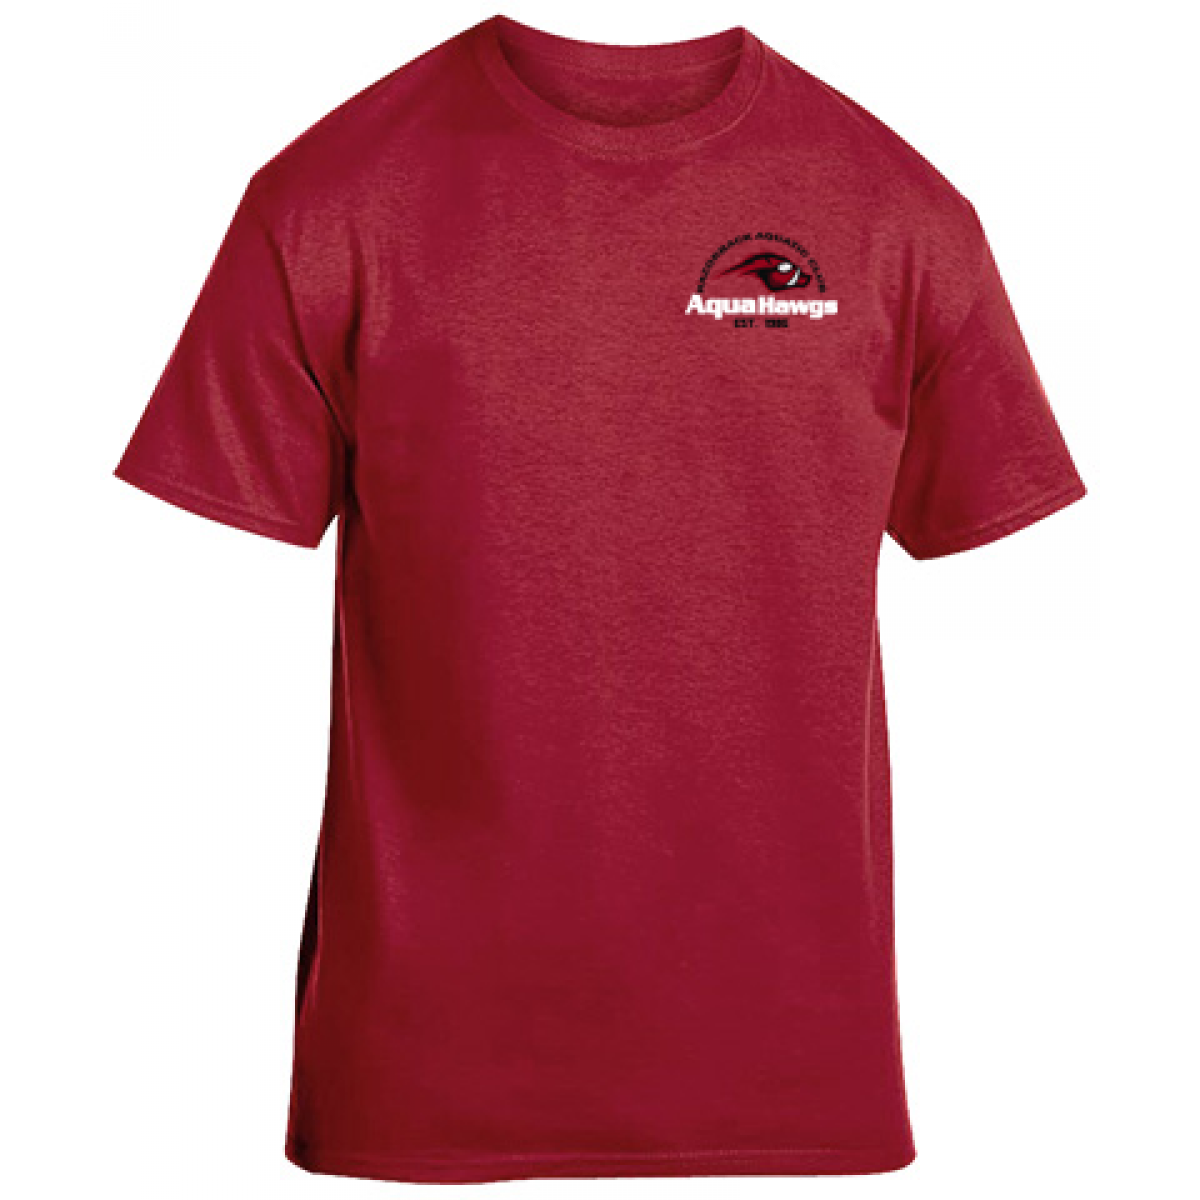 Gildan Cotton Short Sleeve T-Shirt - Cardinal Red-Cardinal Red-L